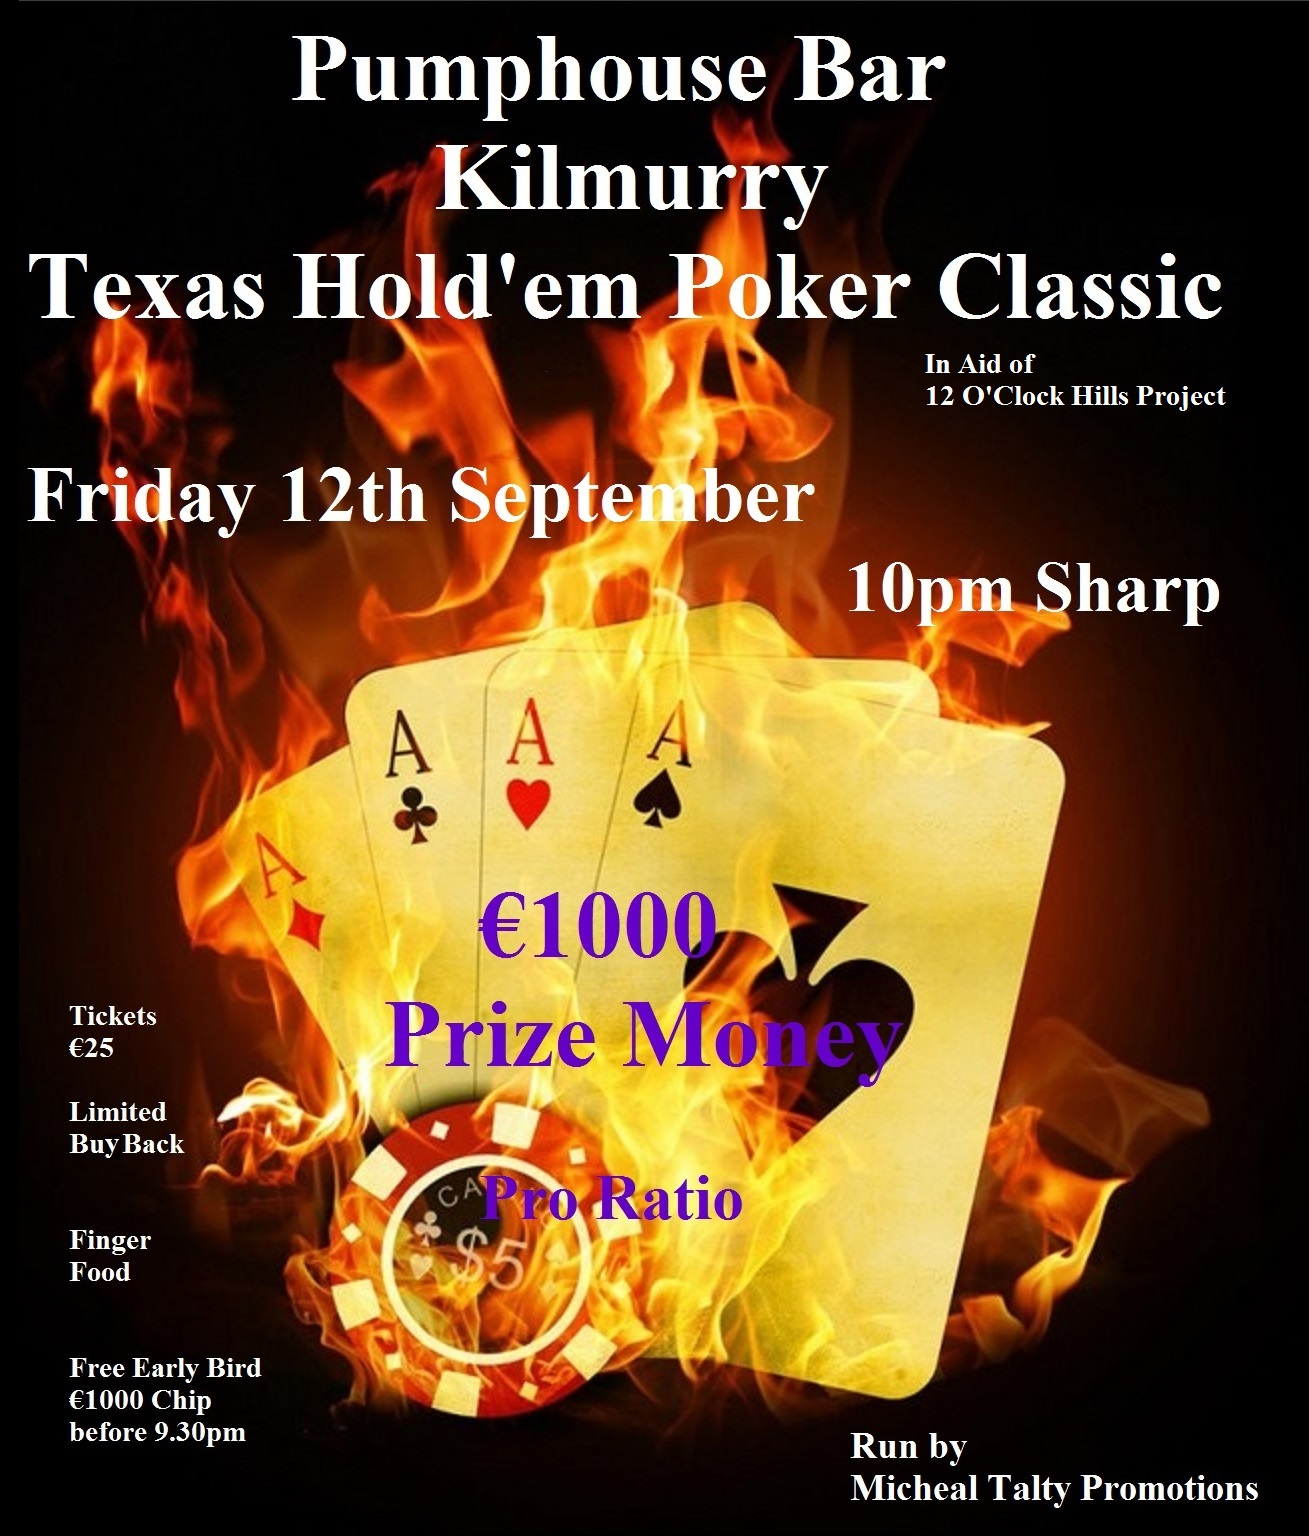 Poker Night Kilmurry